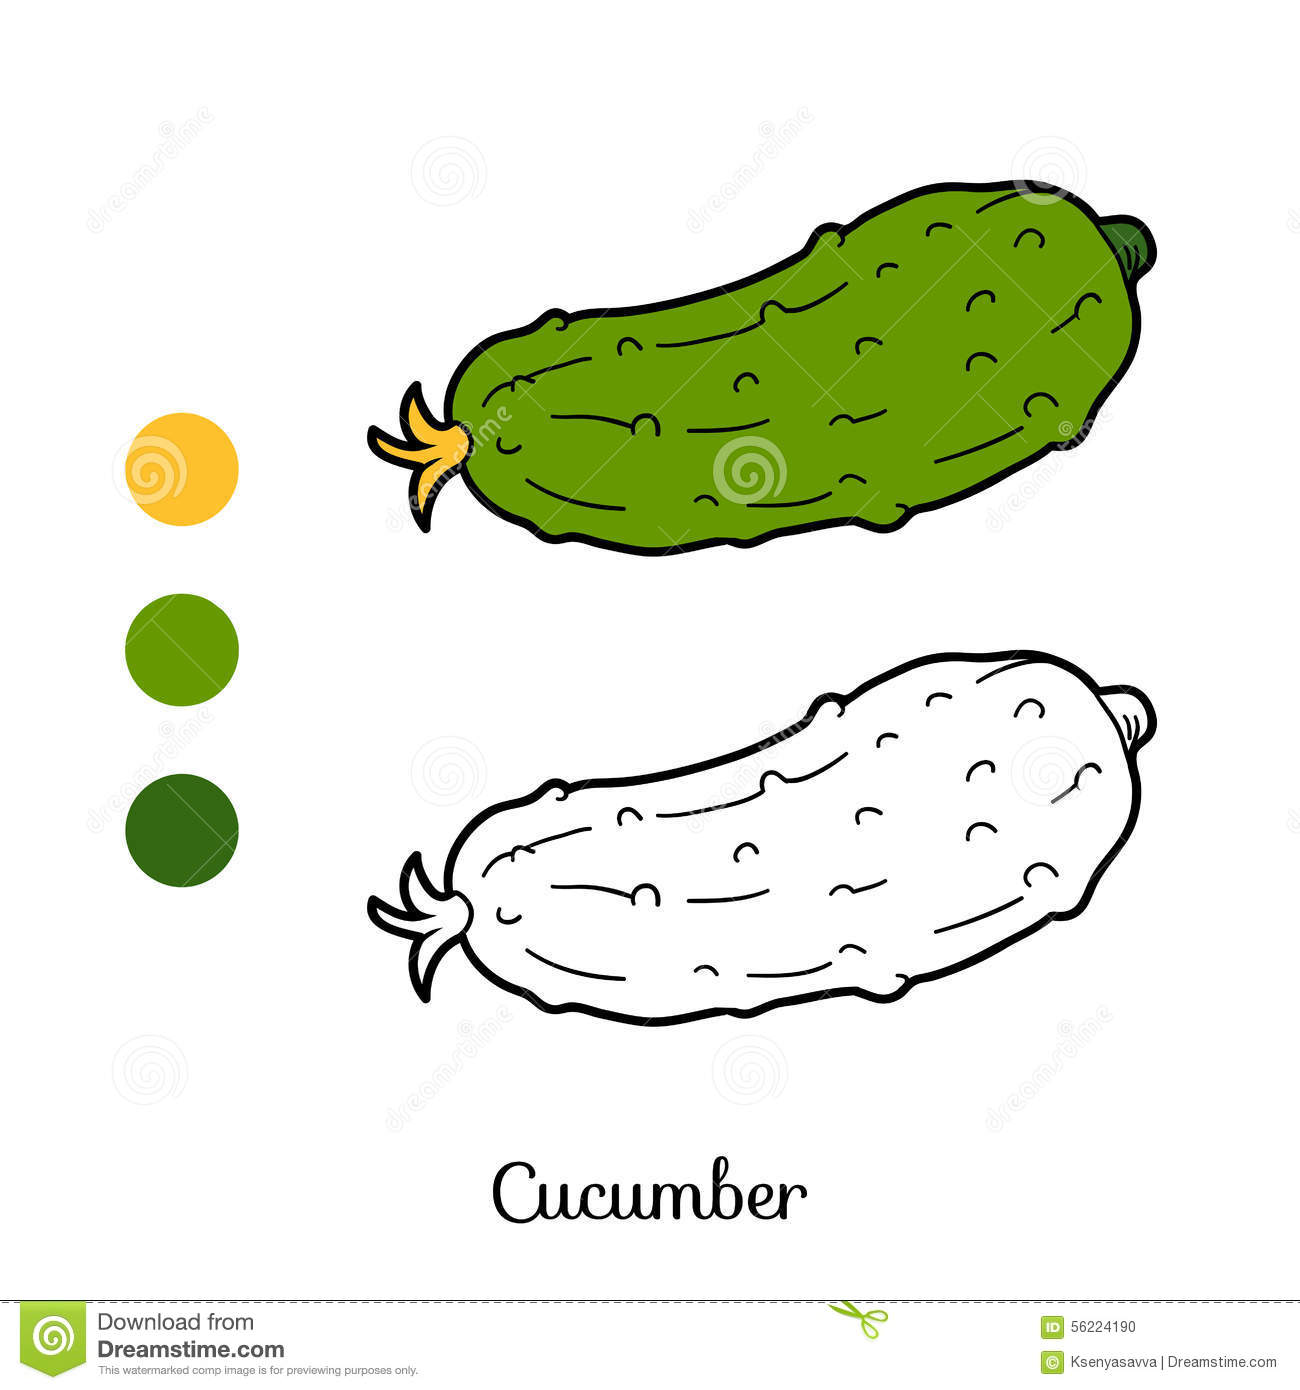 Coloring book pictures of vegetables - Coloring Book Fruits And Vegetables Cucumber Stock Photo